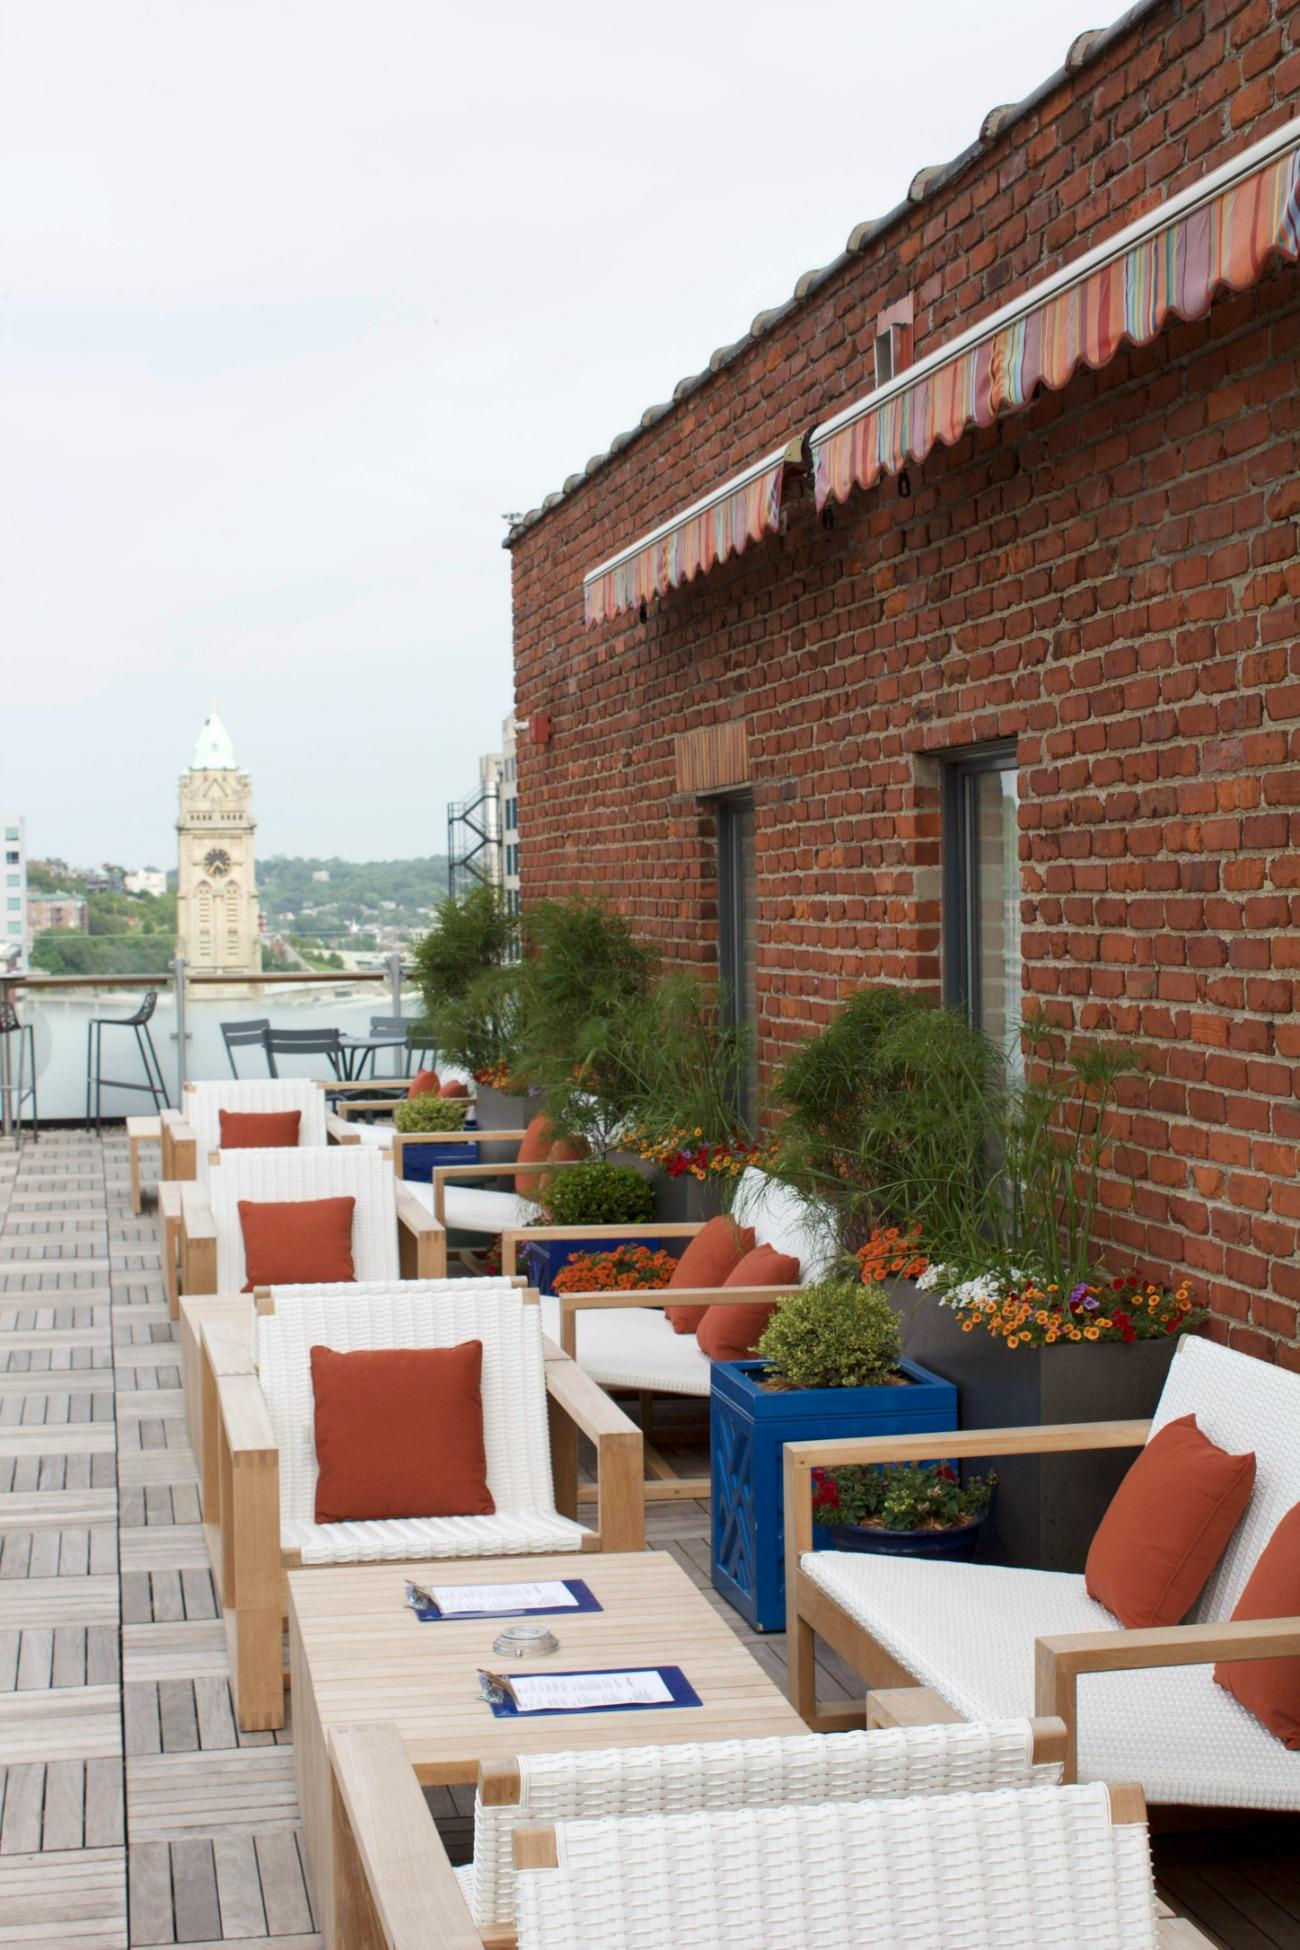 Cocktail Terrace is located at 609 Walnut Street (45202). This bar, located on the 11th floor of the 21C Museum Hotel, is laid back and relaxed with a L-shaped rooftop accessible by elevator on neighboring Gano Street below. / Image: Emily Cahill // Published: 6.7.17